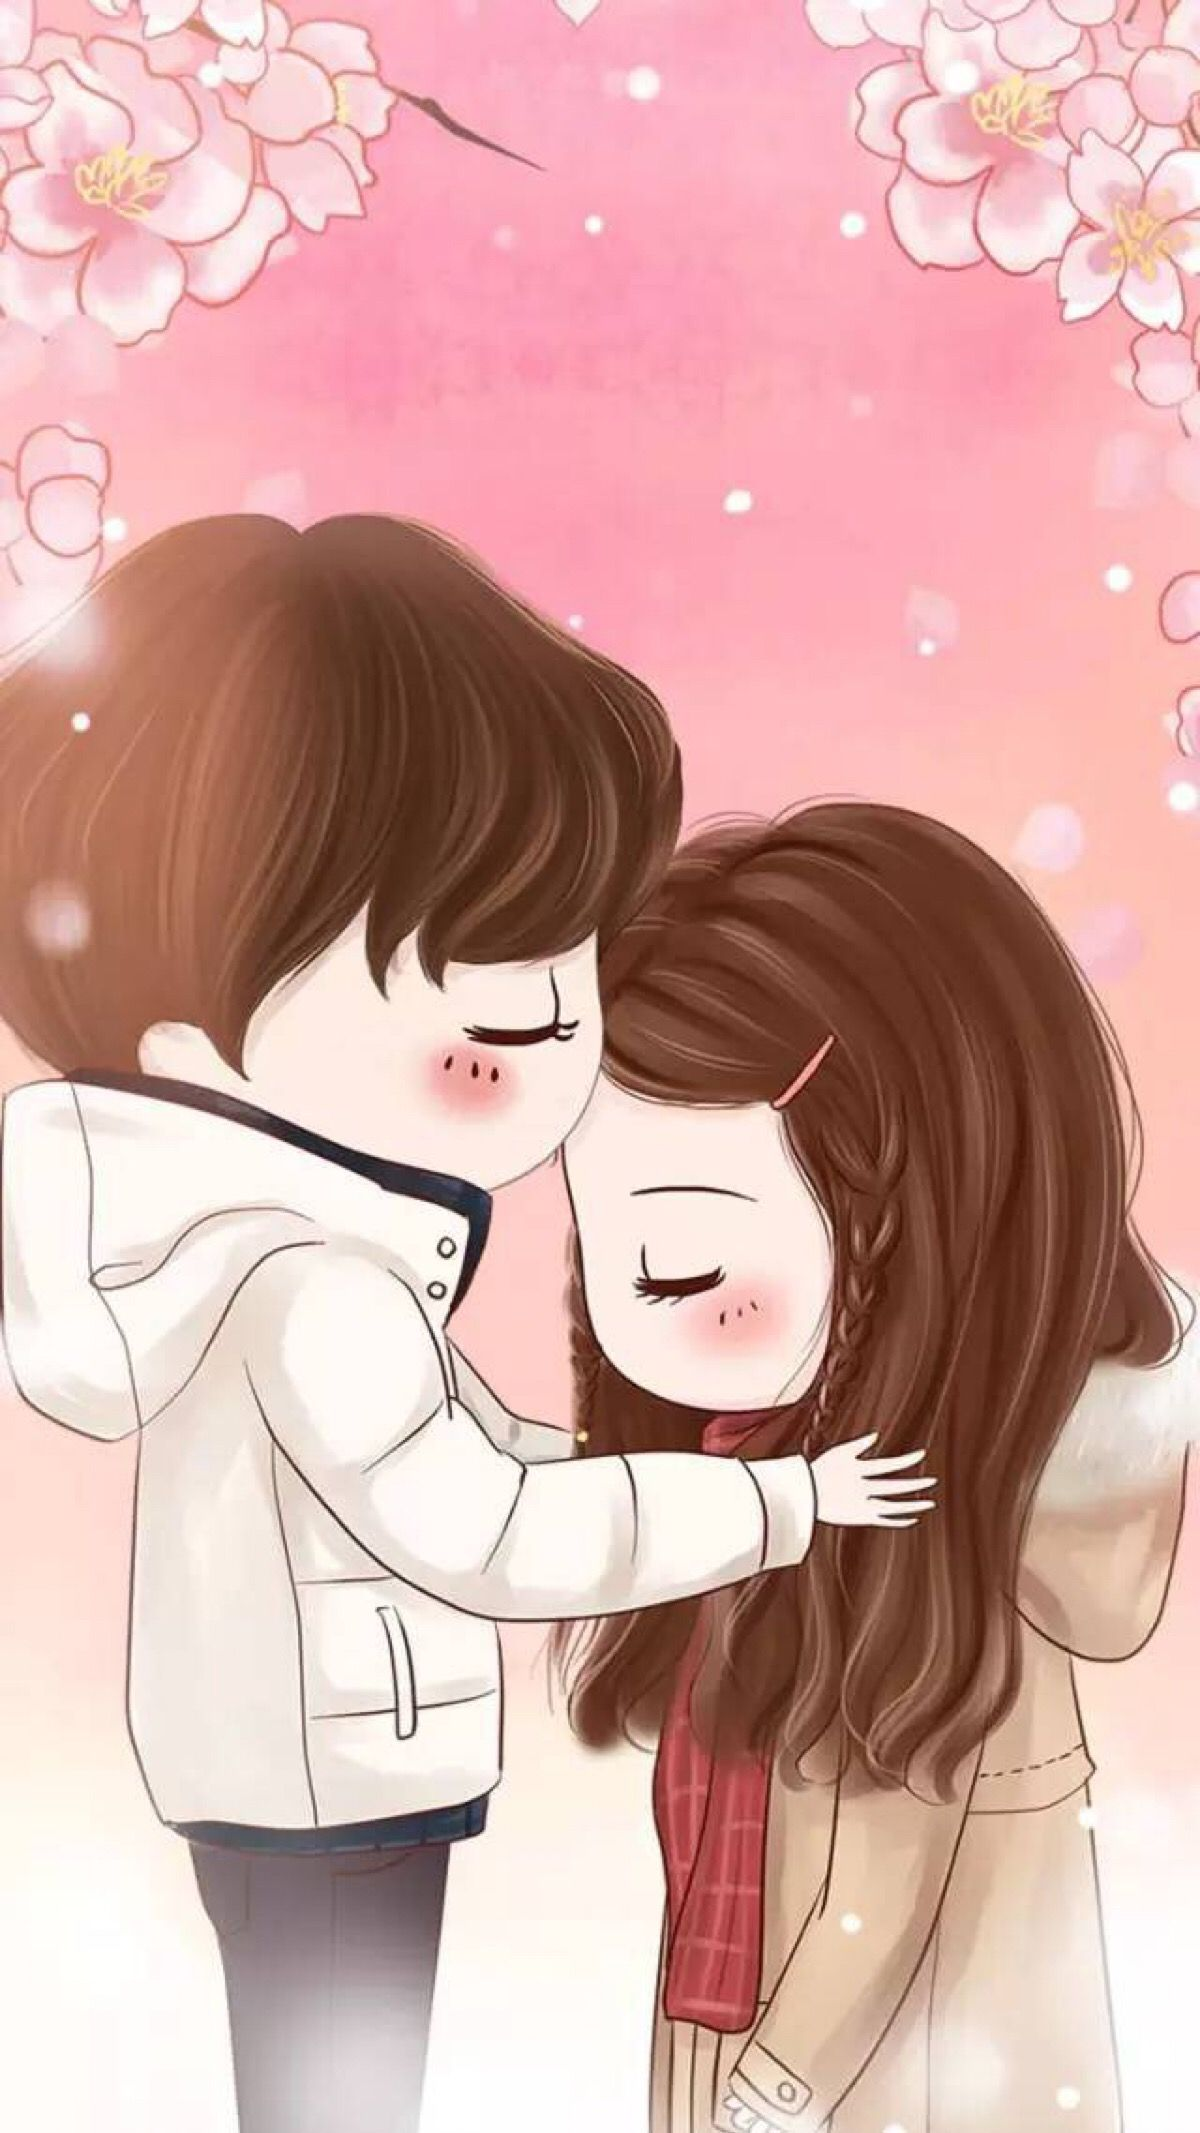 Pin By Thanh Thanh On Chibi Girls Cute Couple Wallpaper Love Cartoon Couple Anime Love Couple